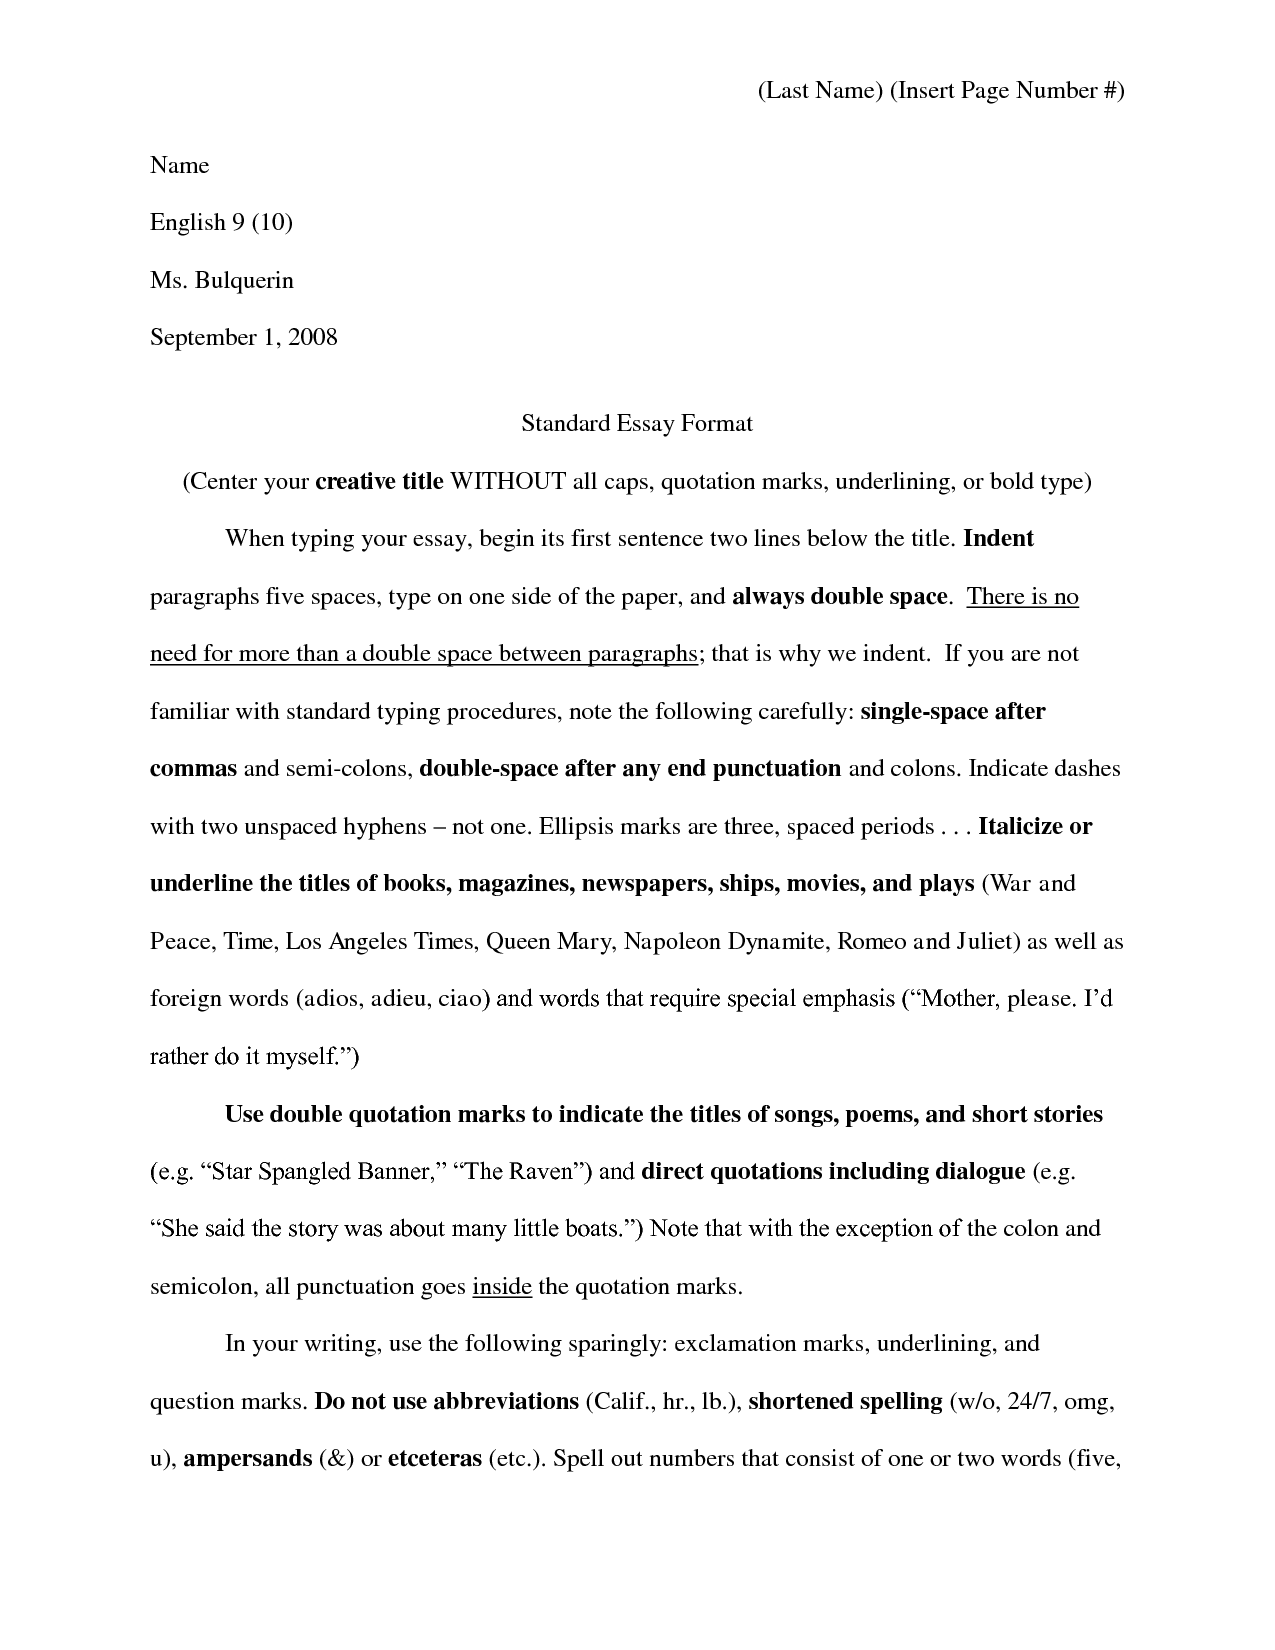 023 Proper Essay Format Unique Pdf Paper College Argumentative Full